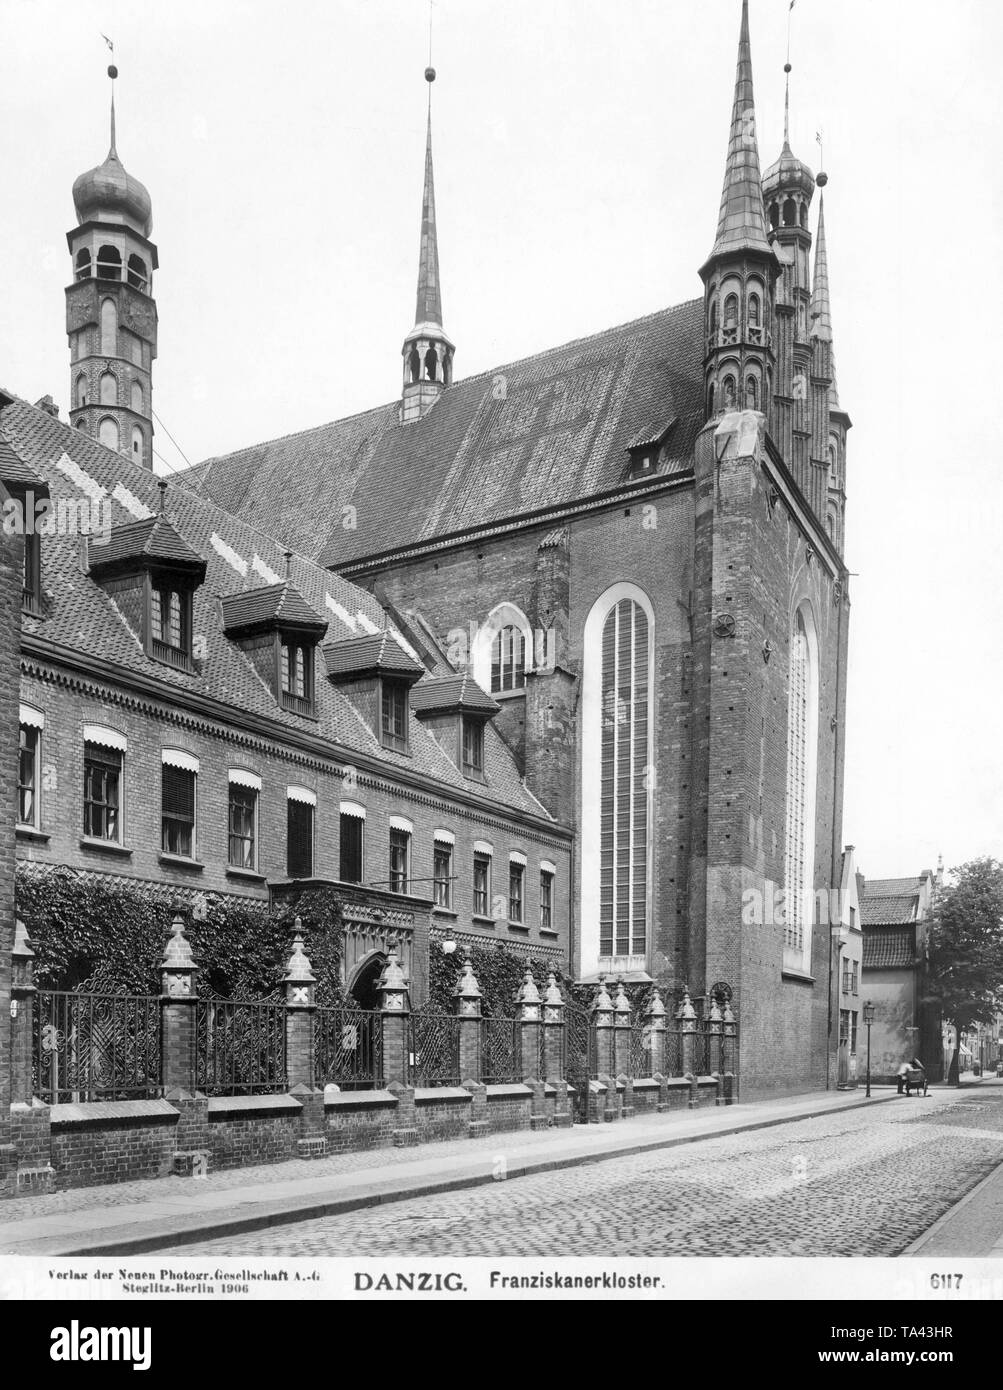 The Church of St. Trinitatis belongs to the Franciscan monastery in Gdansk, built in the 15th century. During the Second World War, the church was severely damaged and after 1945 was renovated in several steps till 2001. - Stock Image